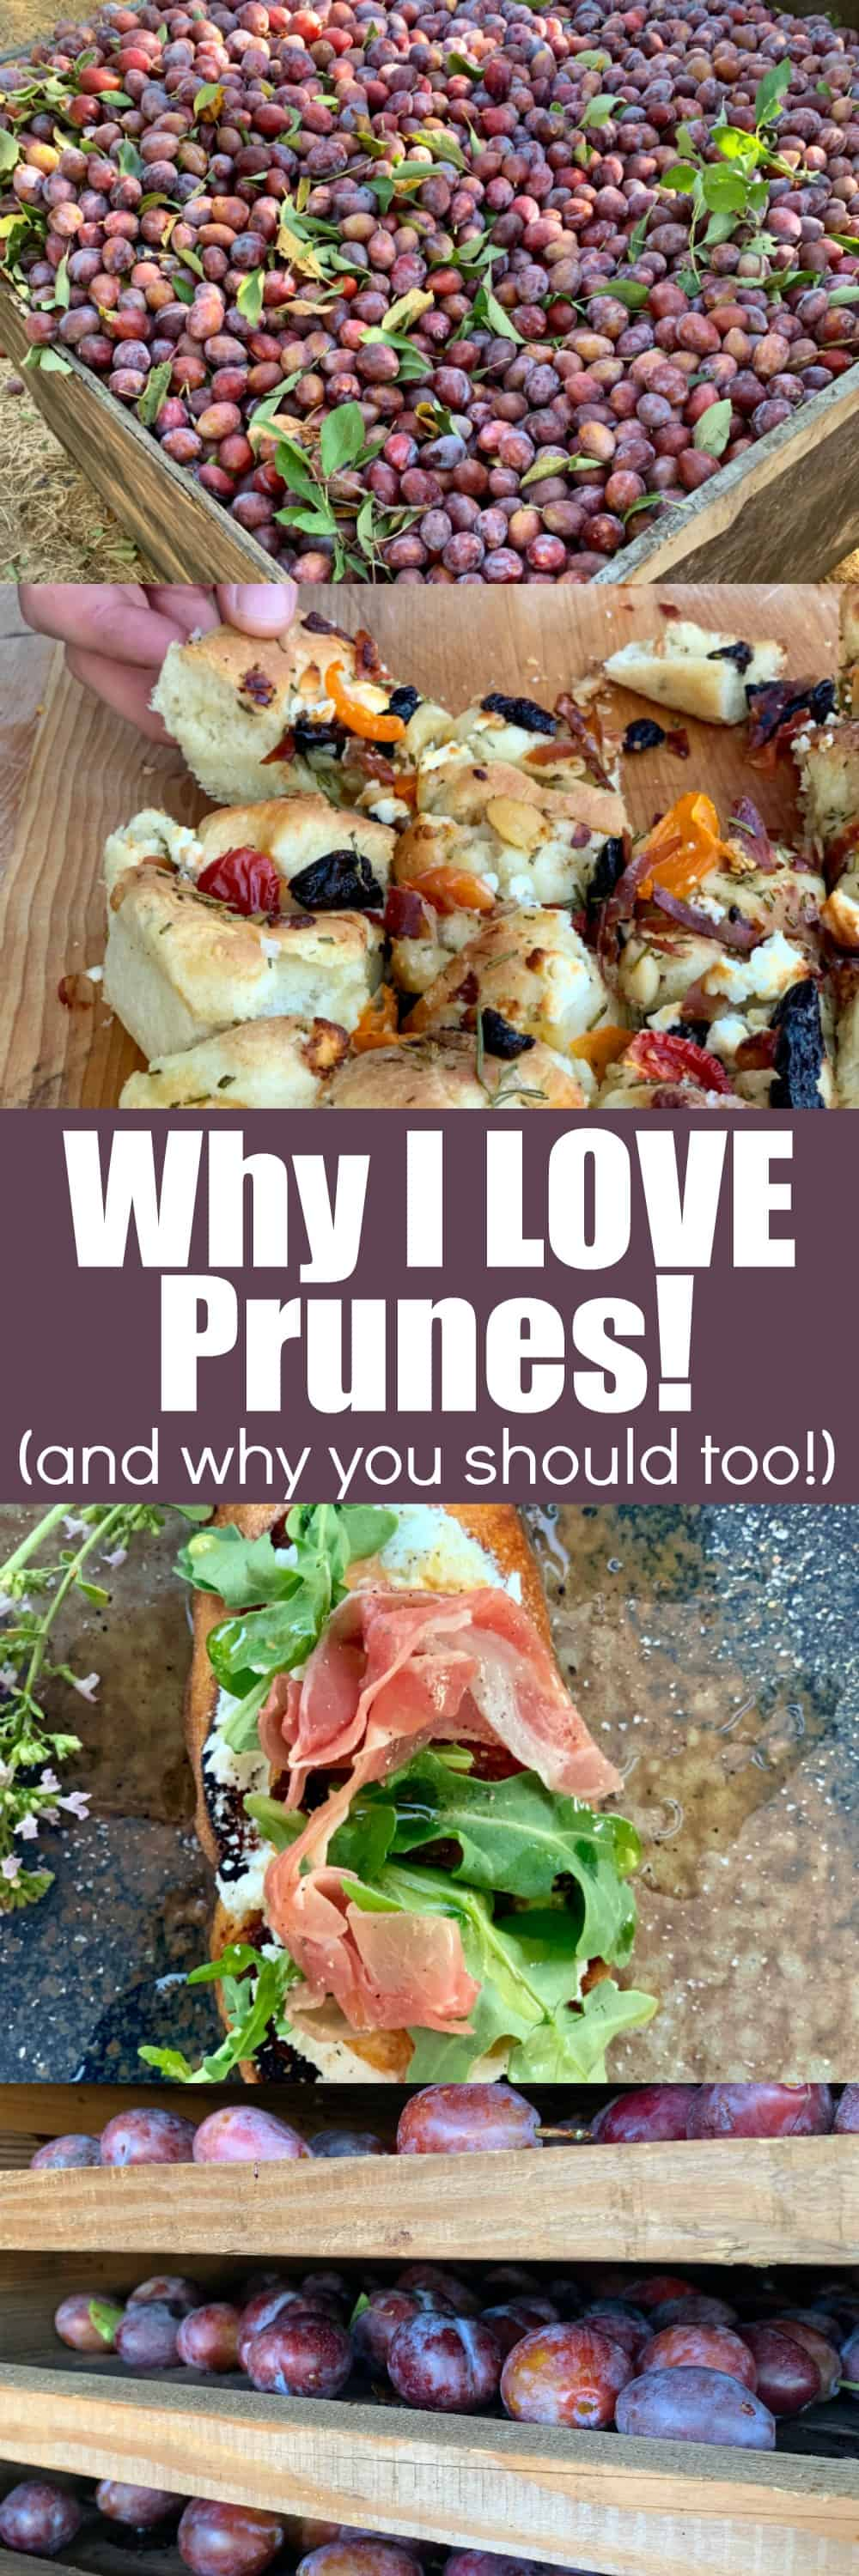 Prunes get a bad reputation but they shouldn't!! They are incredible little treats that deserve to be loved! Learn all about my awesome trip to Sonoma, California to visit a prune orchard and learn all about one of my favorite snacks in the whole world! This is why I LOVE prunes - and you should, too!! 